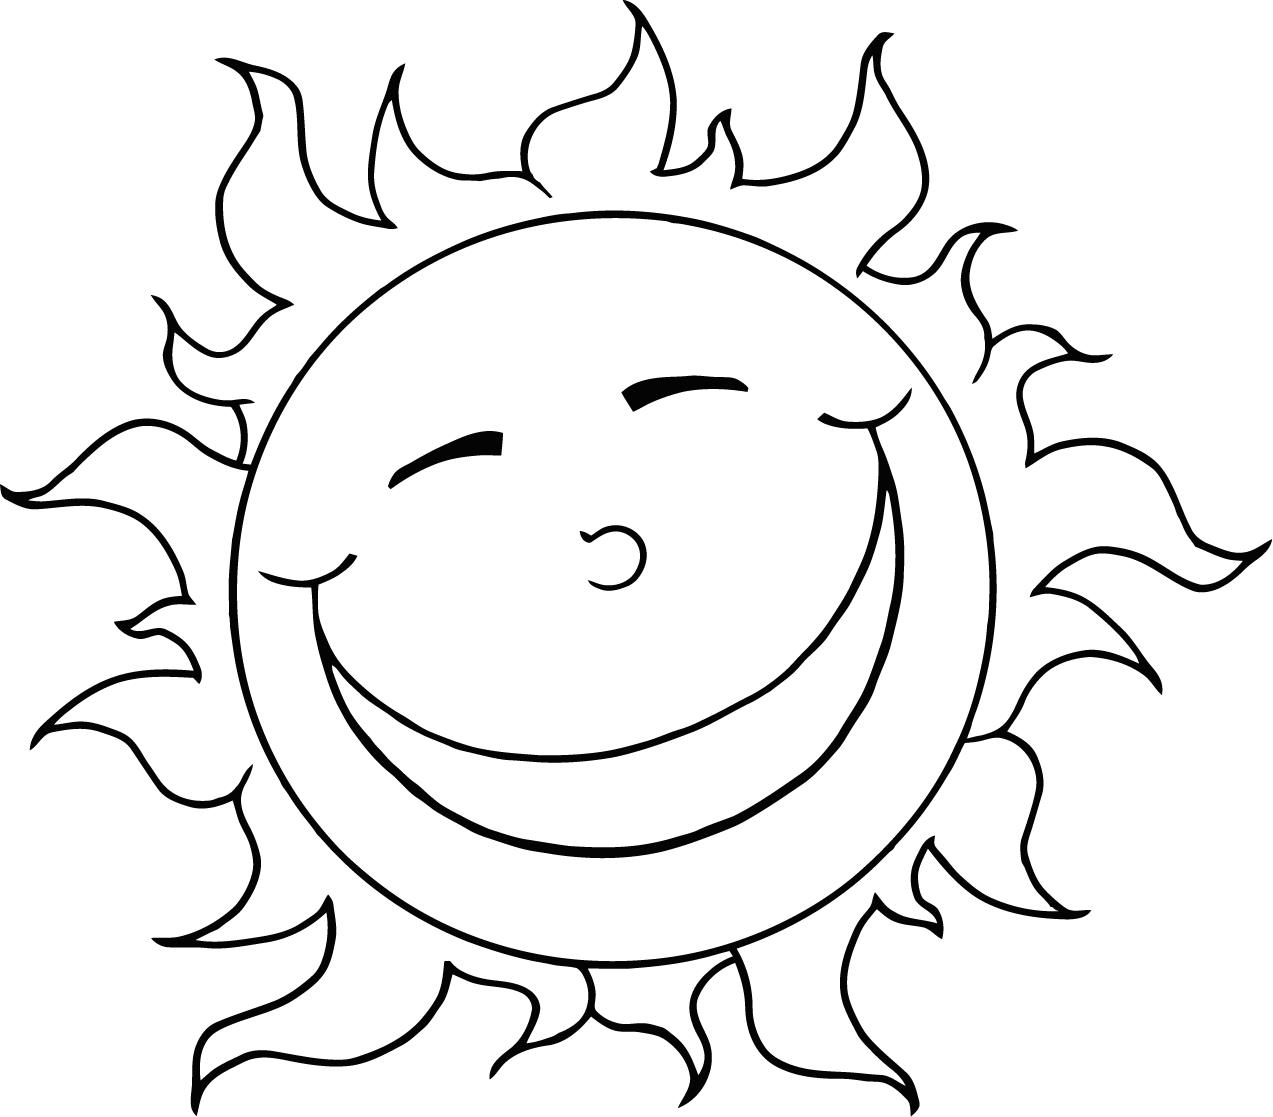 1273x1117 Sun Picture For Kids Coloring To Print